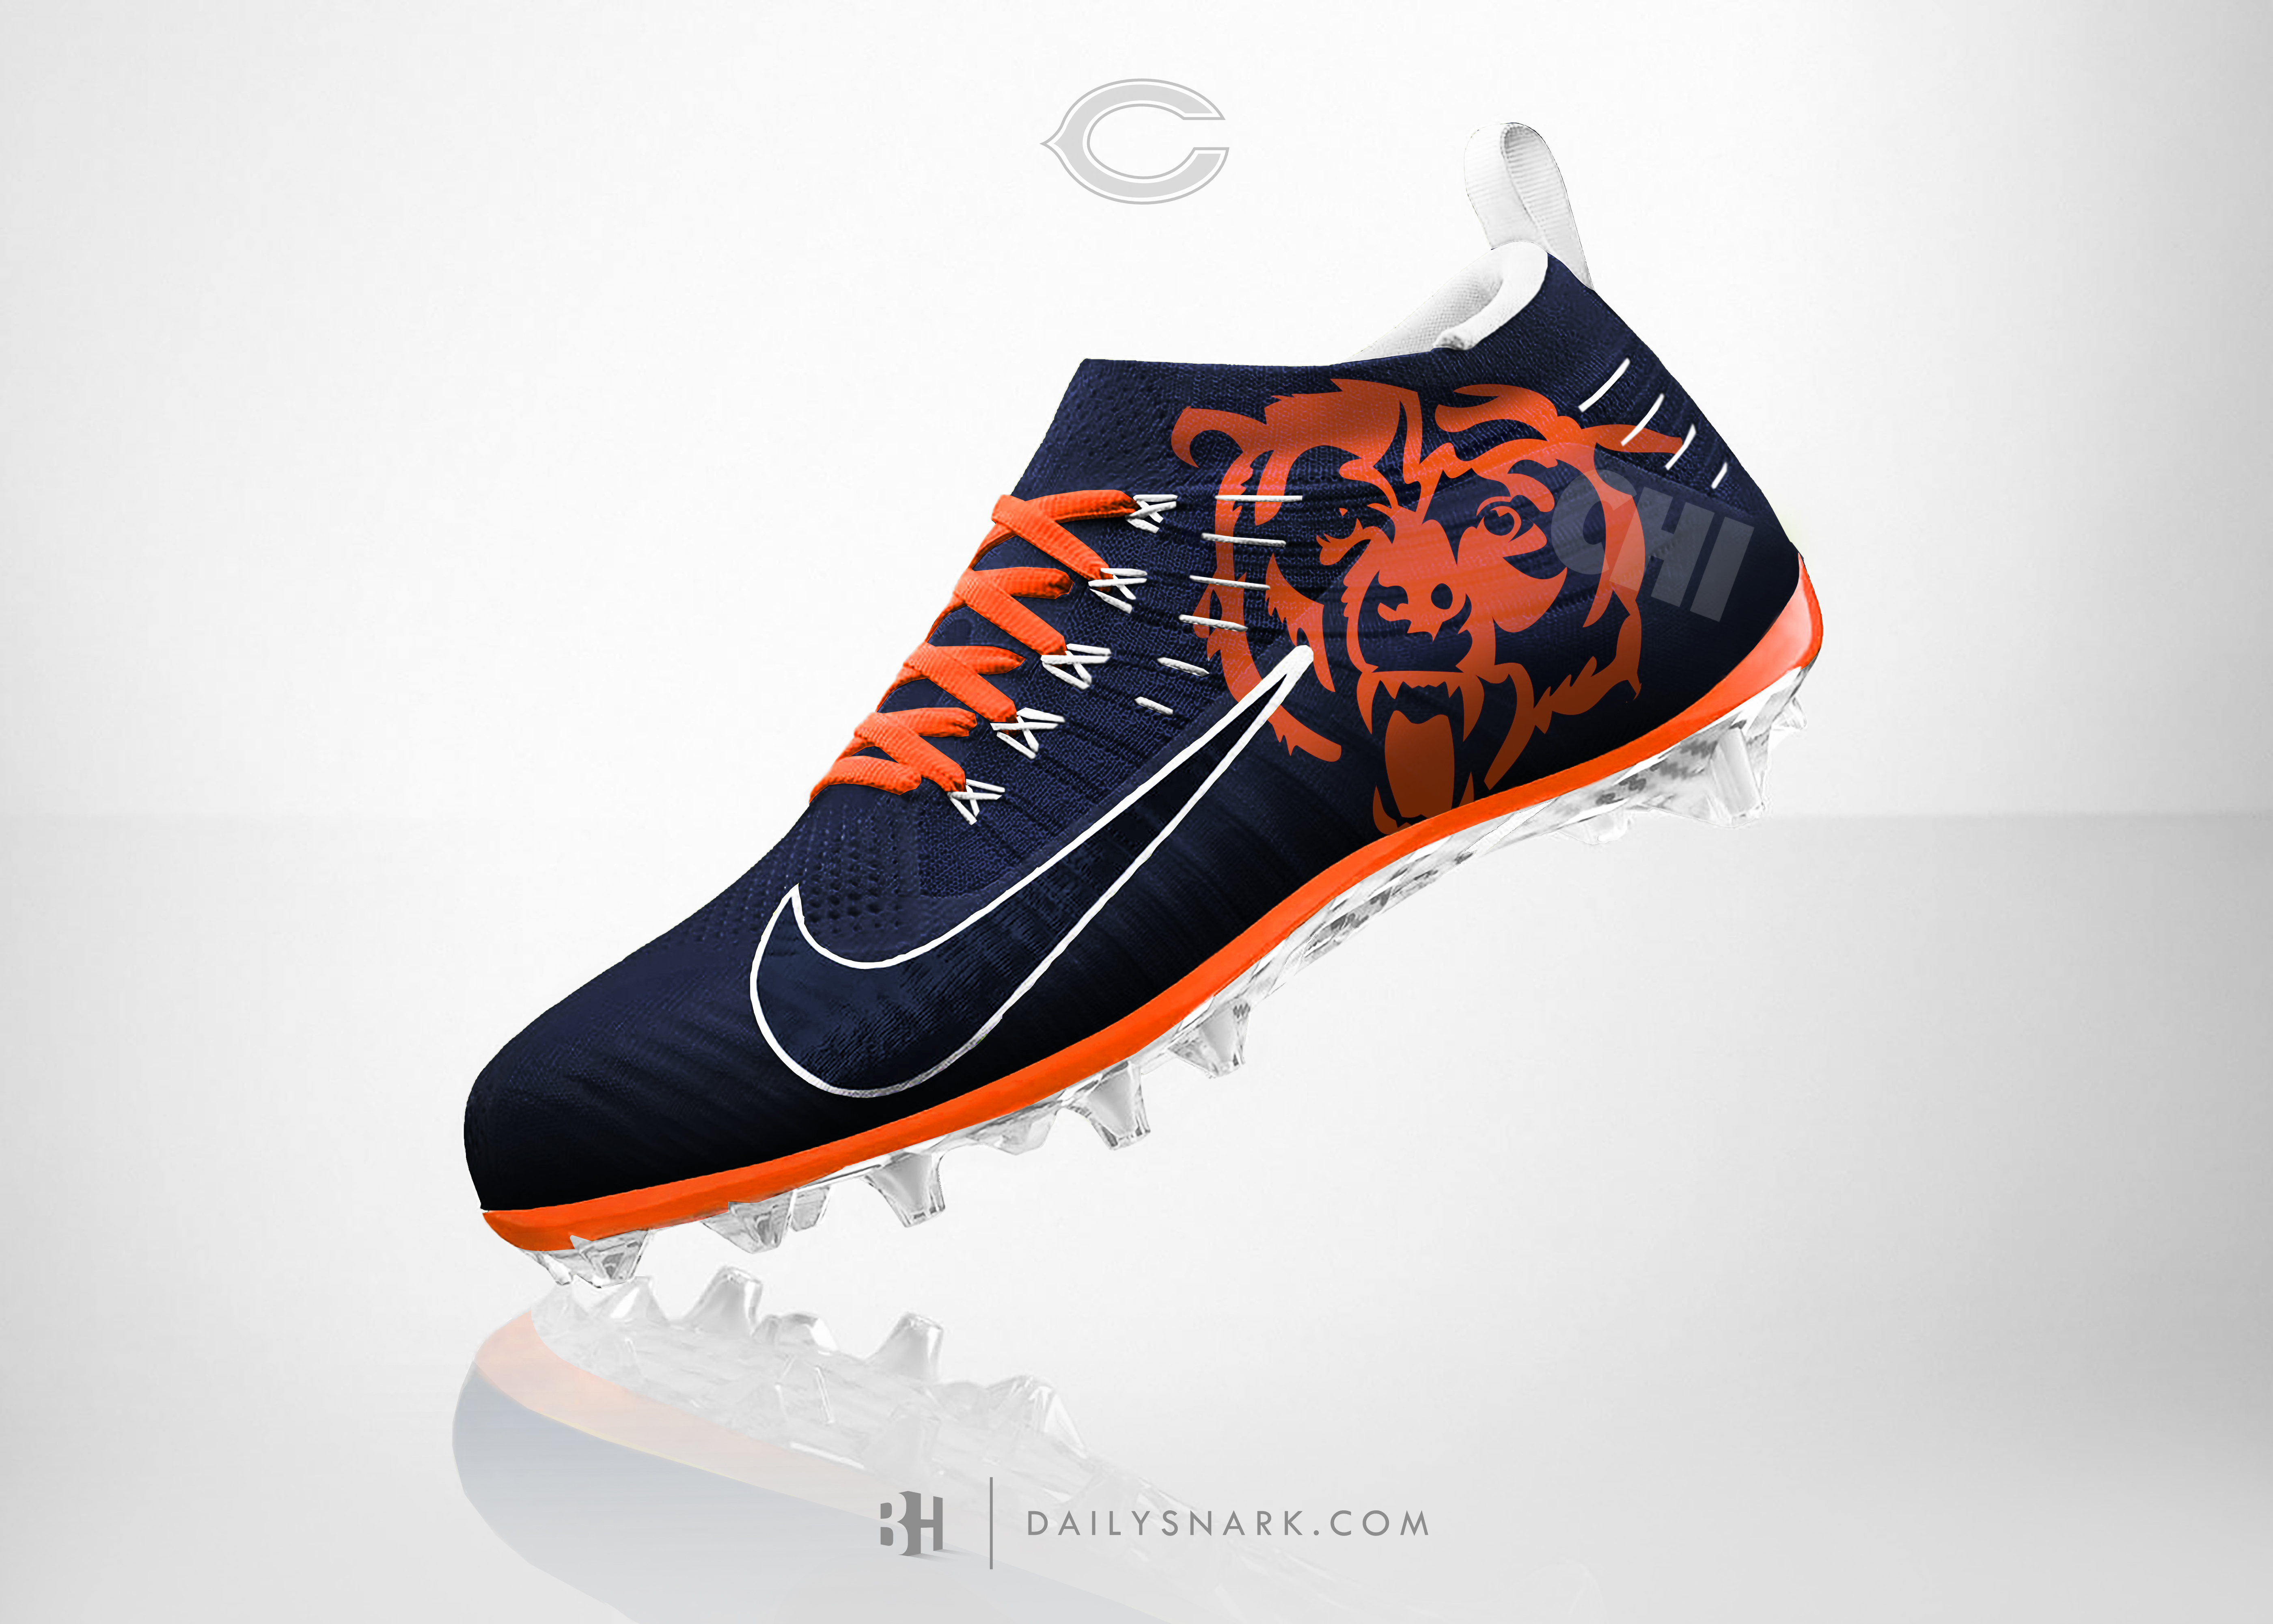 Chicago Bears Nike Shoes